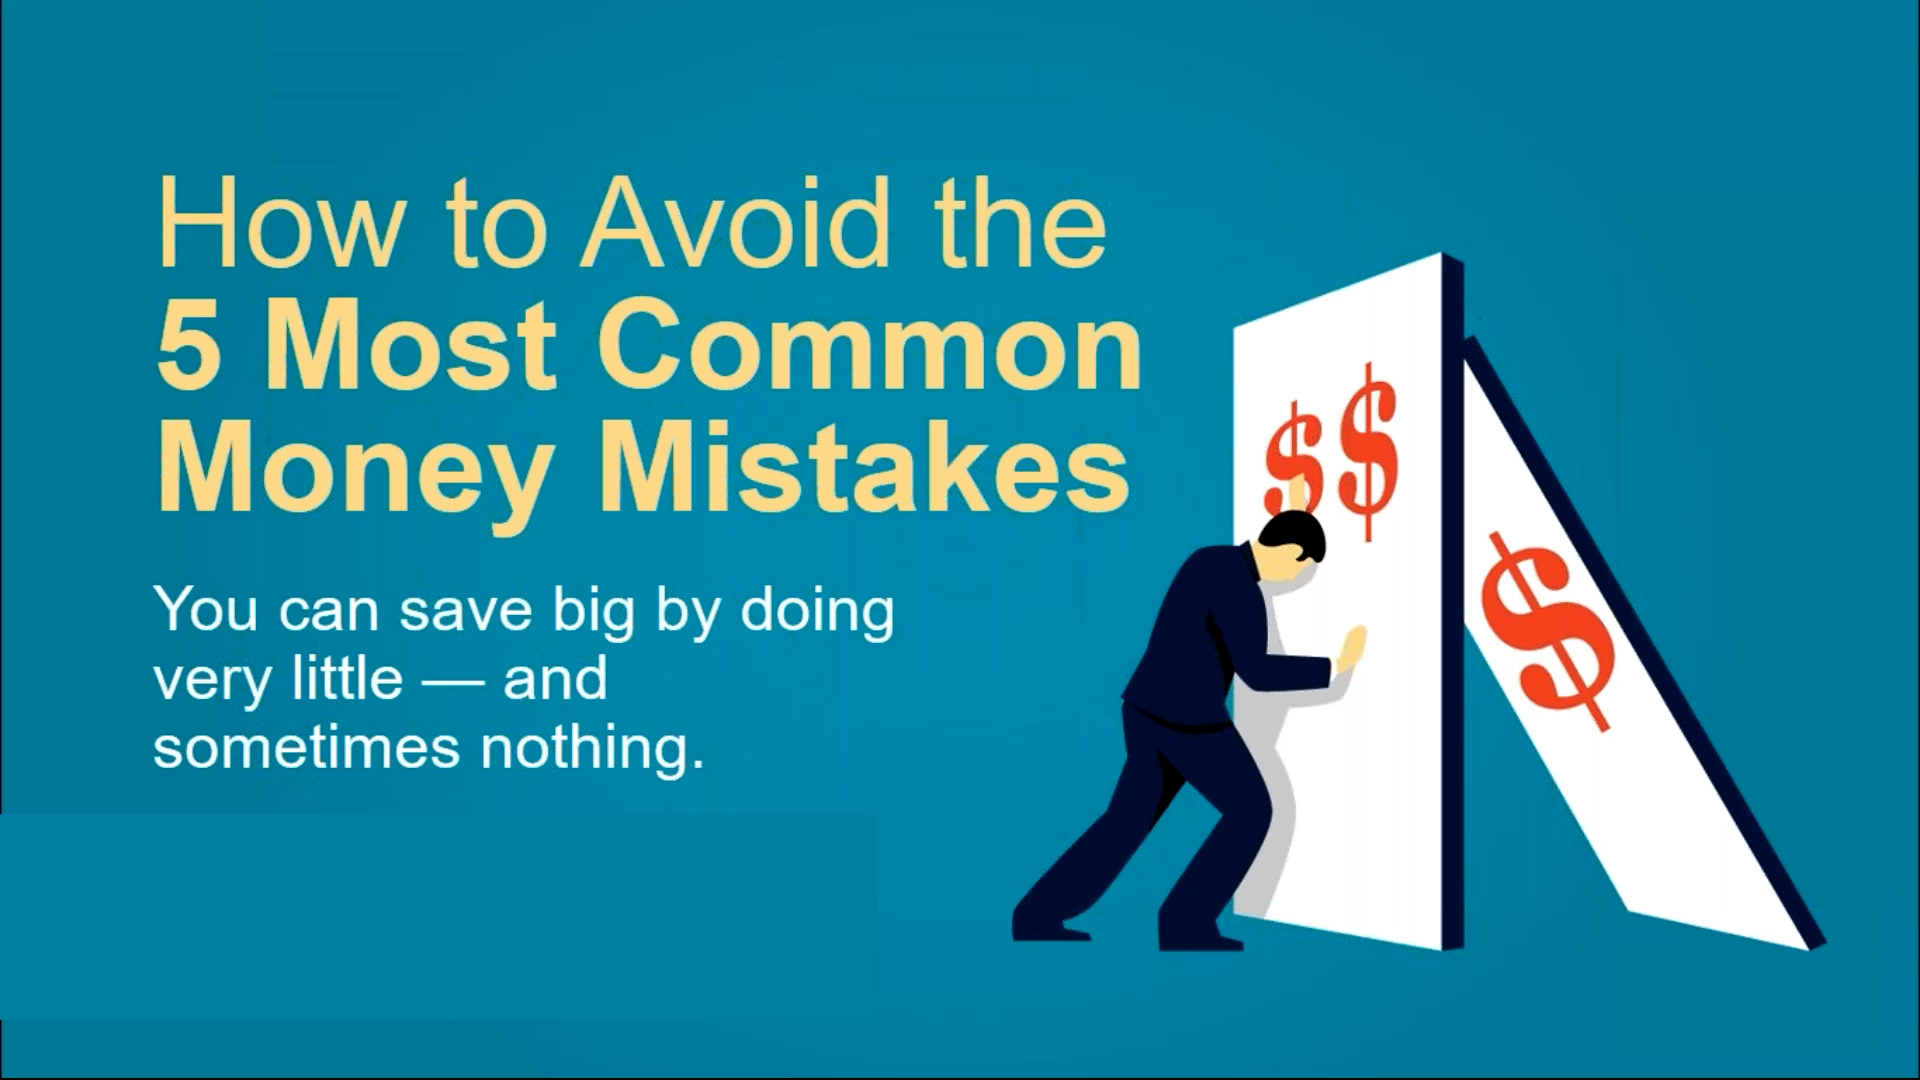 How to Avoid the 5 Most Common Money Mistakes